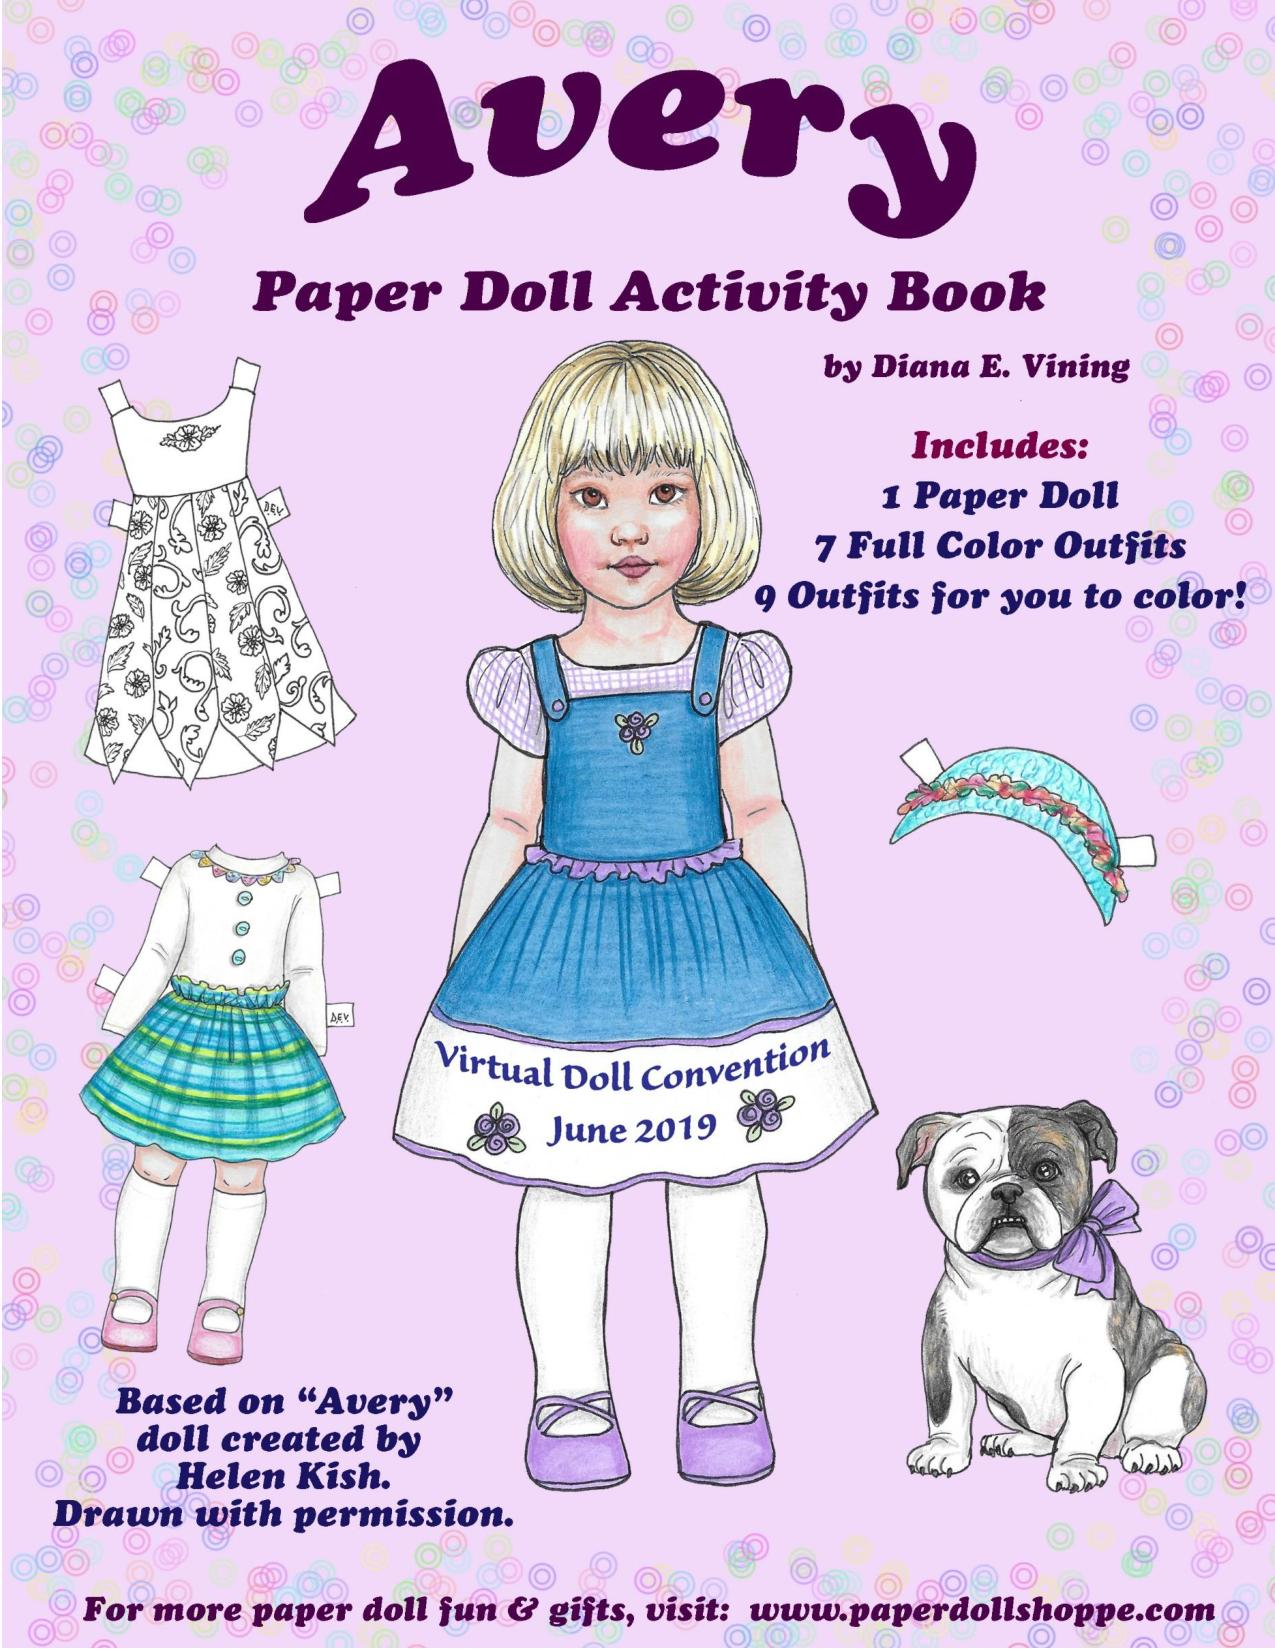 June 2019 Virtual Doll Convention Avery Paper Doll Book-page-001.jpg